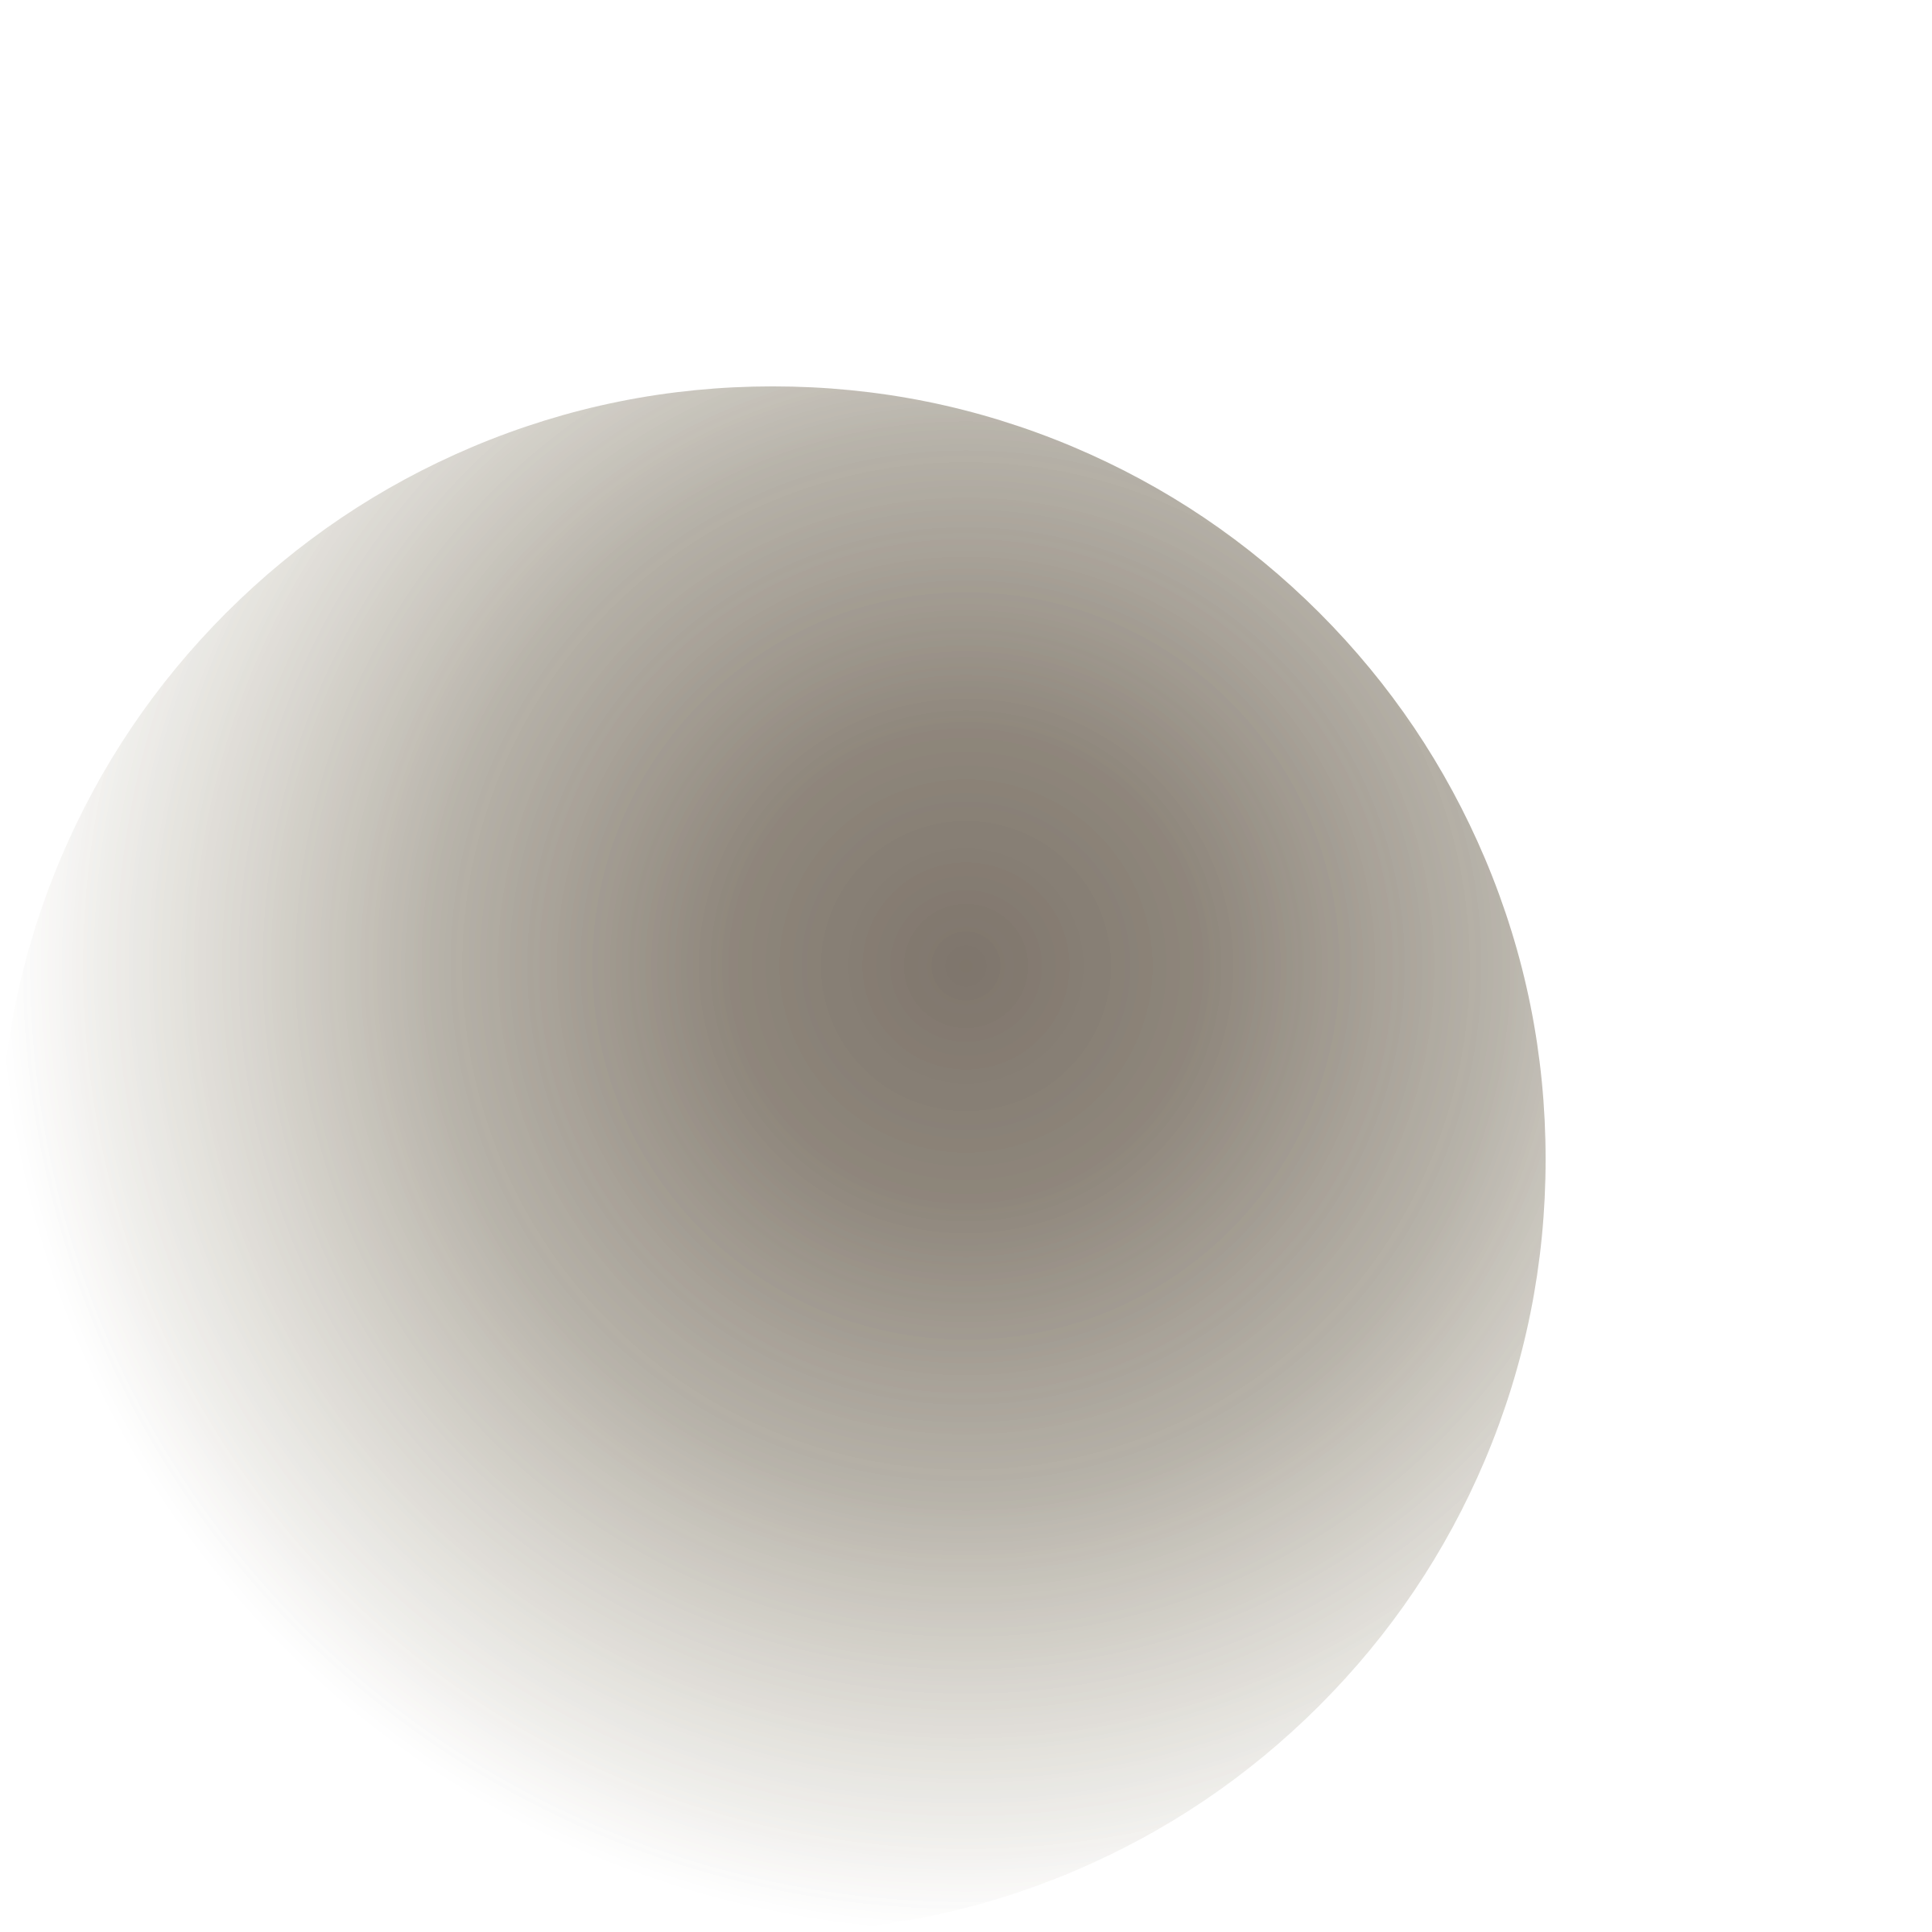 Circle shadow png. Alpine landscape brown percent